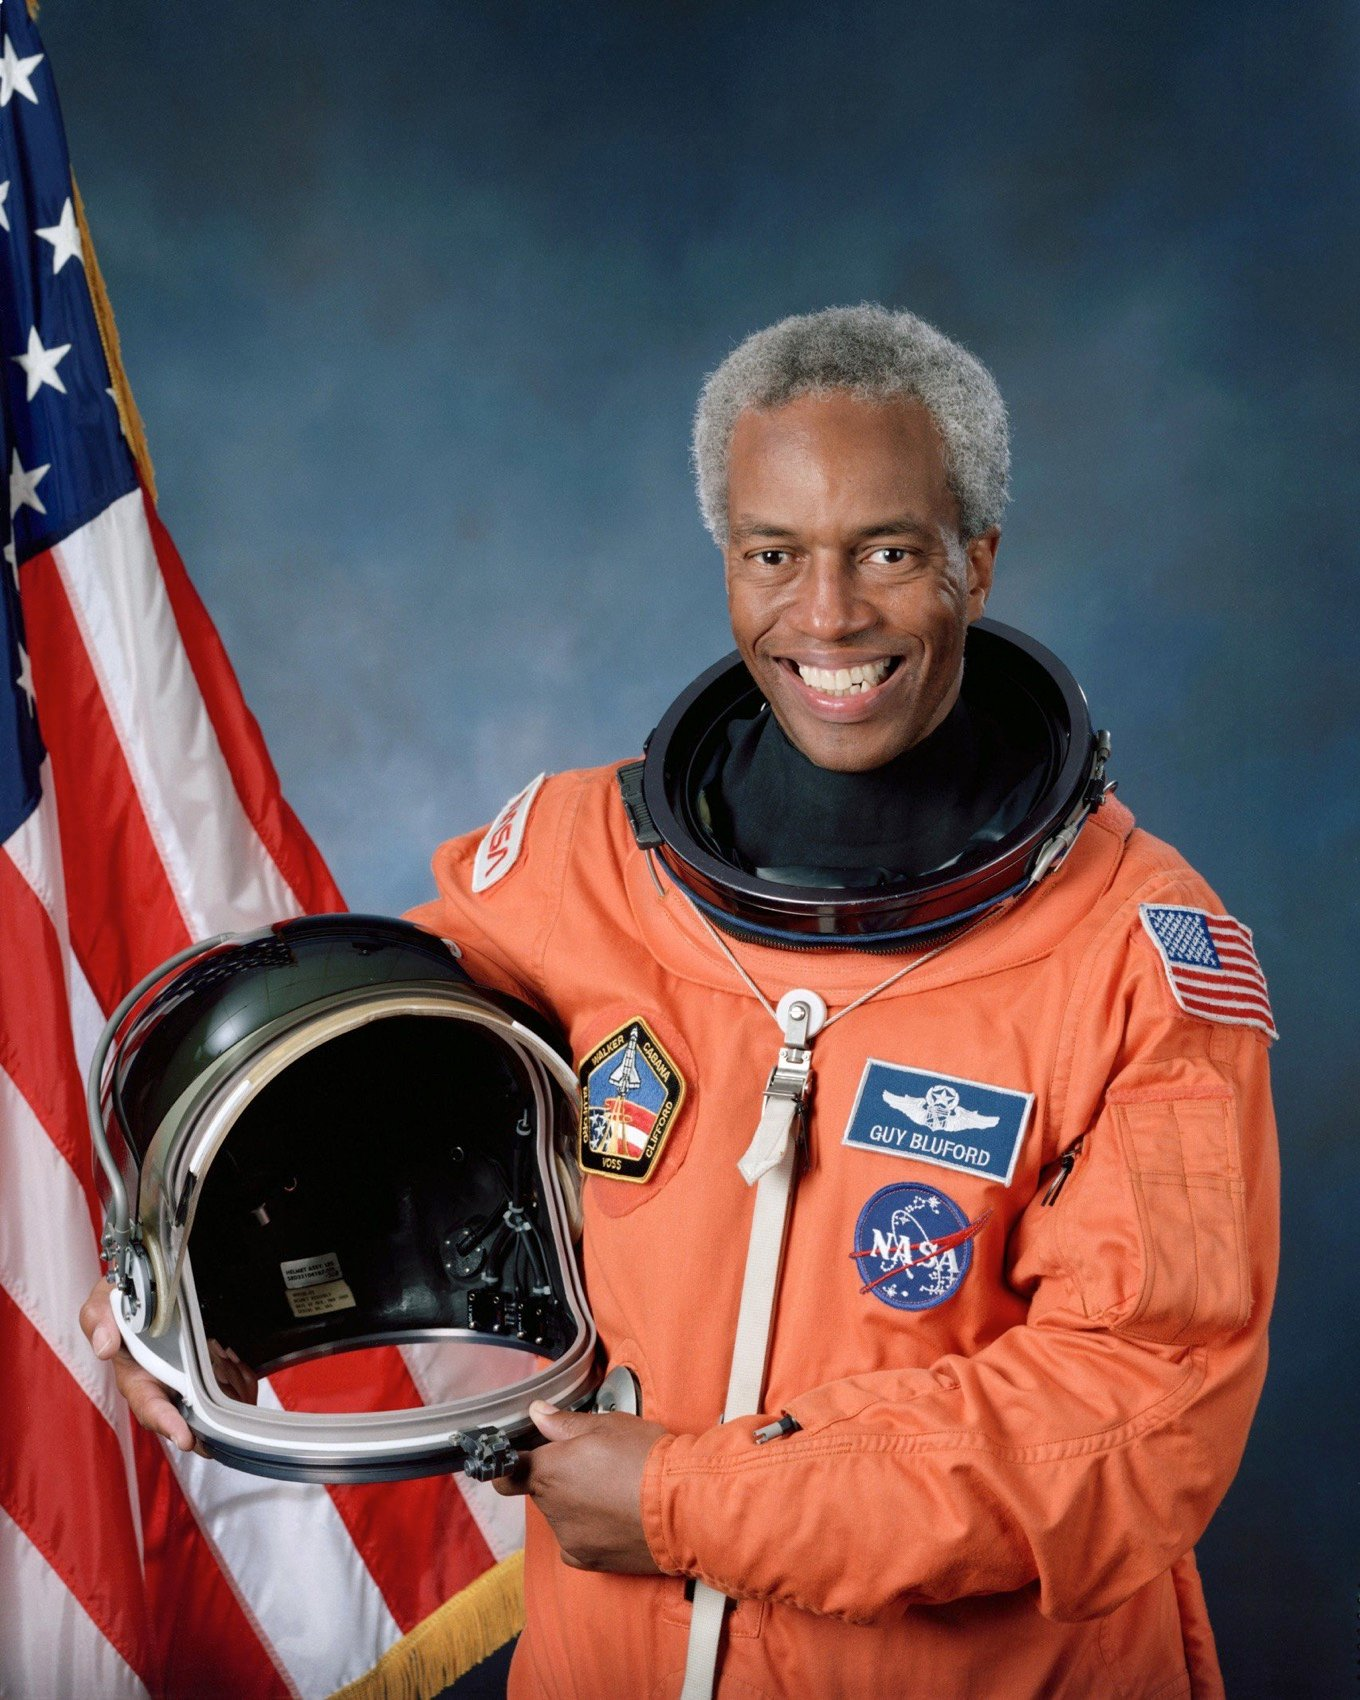 nasa astronauts black - photo #3